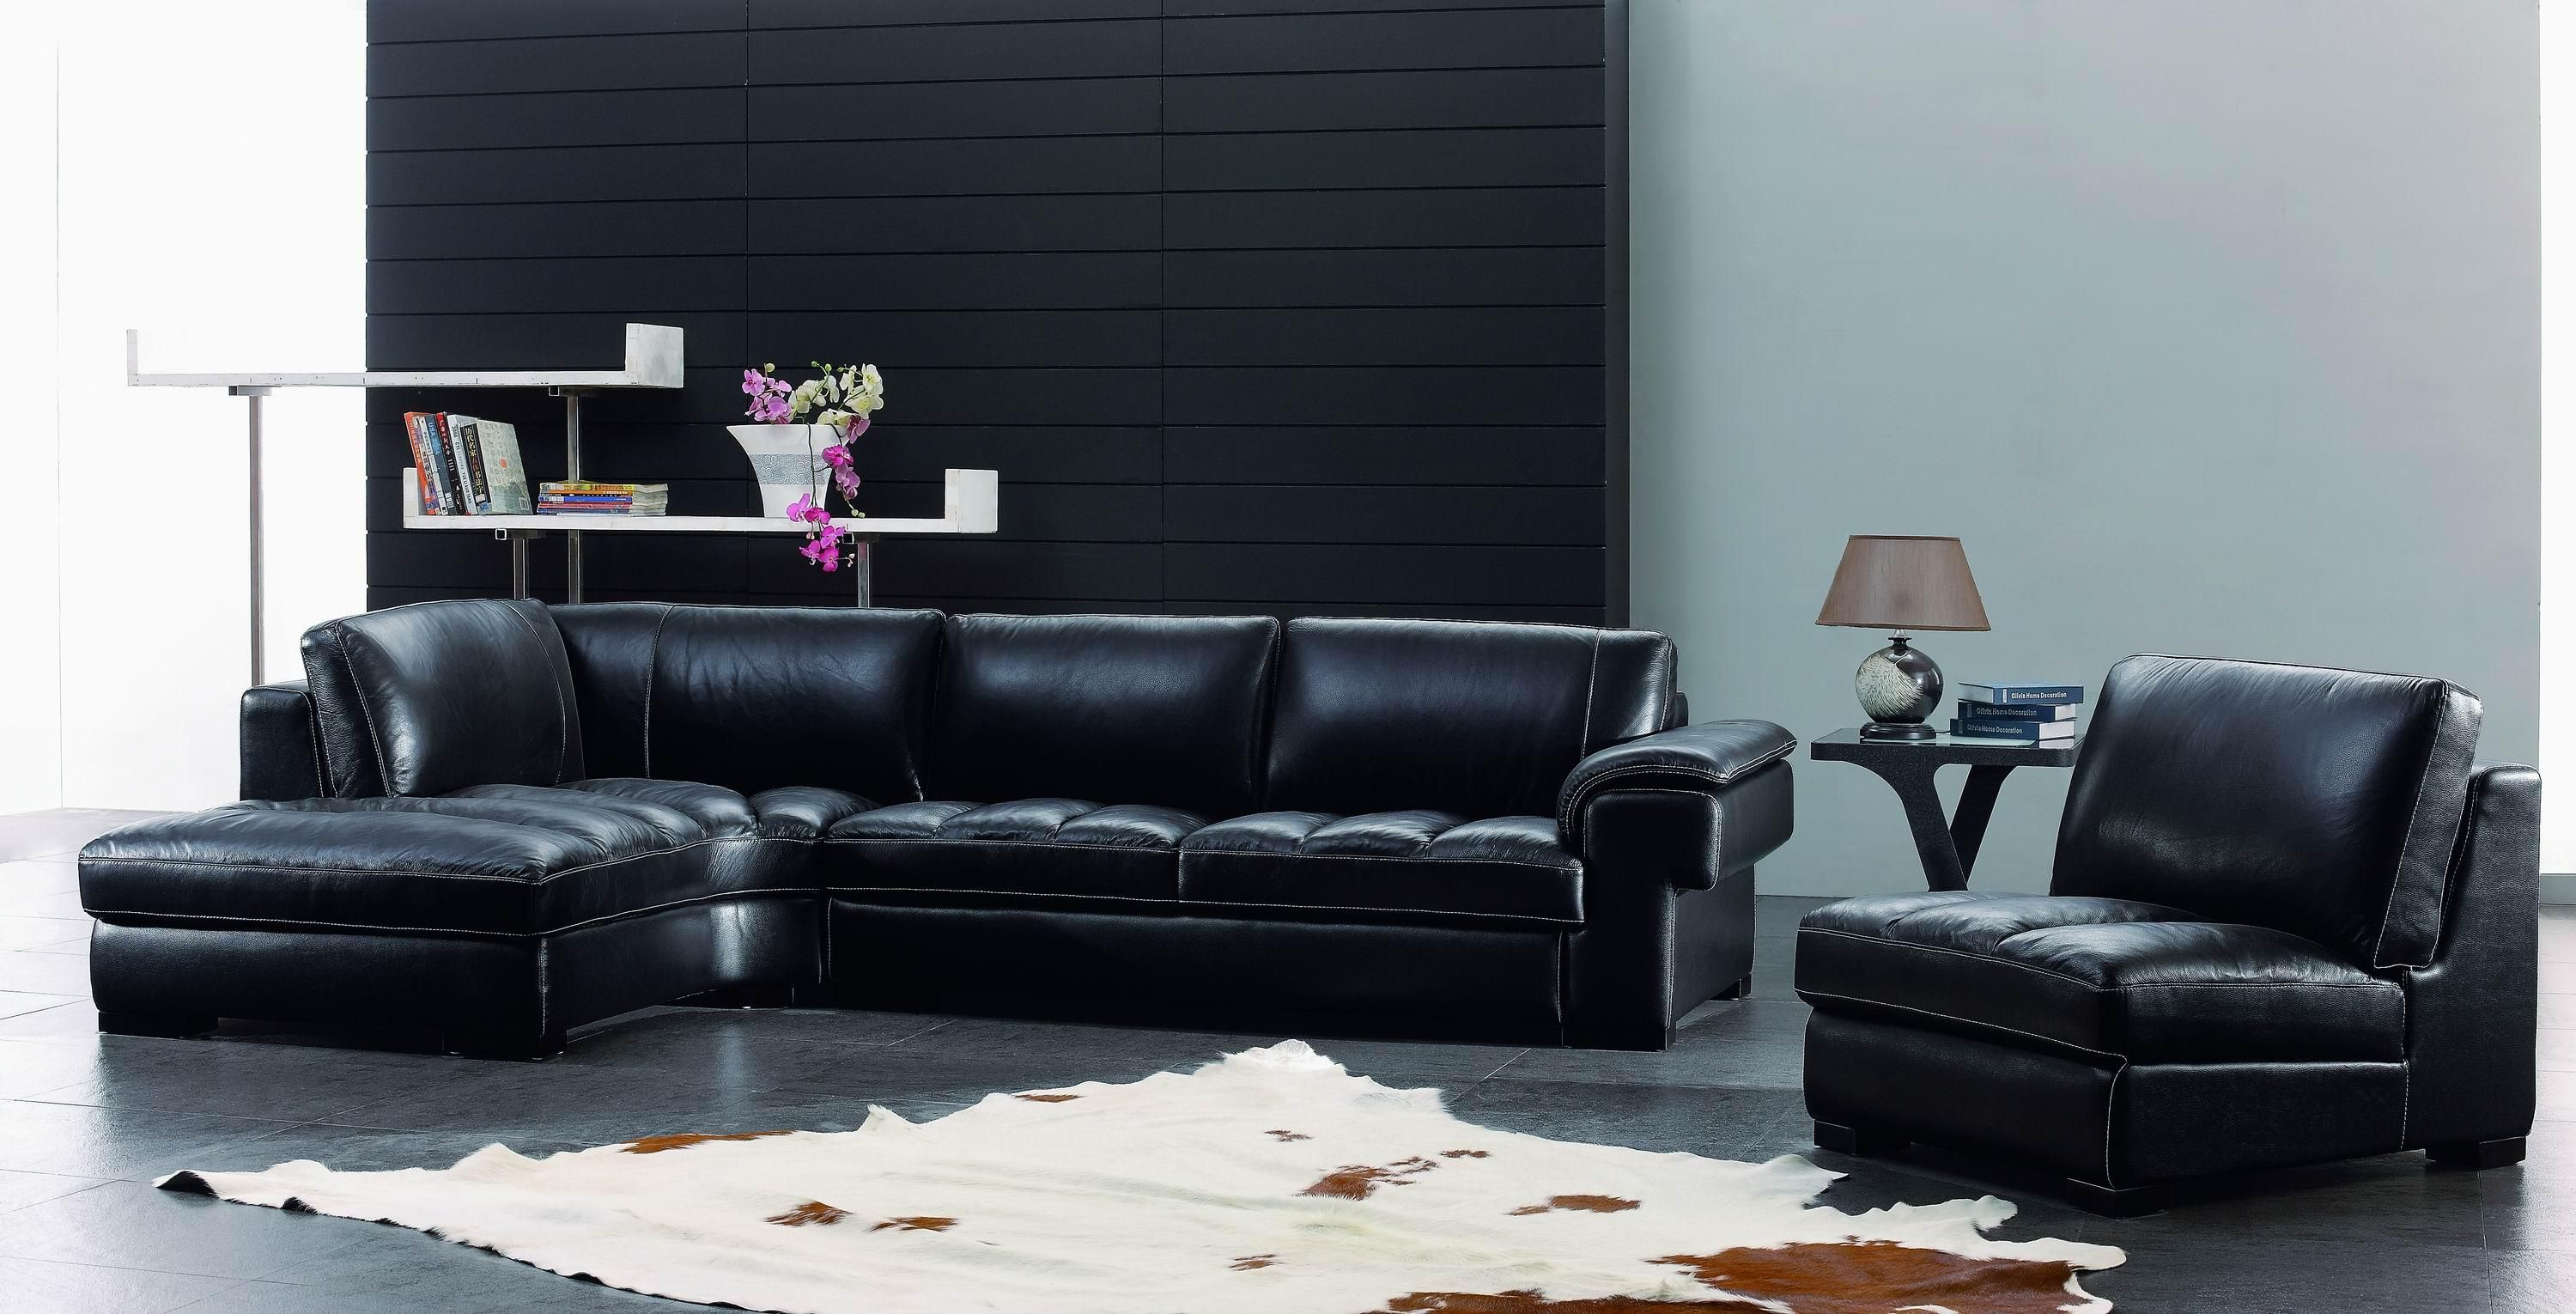 Living Room Design With Black Leather Sofa New L Shaped Black Leather Couch Connectedblack Wall Theme And Inspiration Design